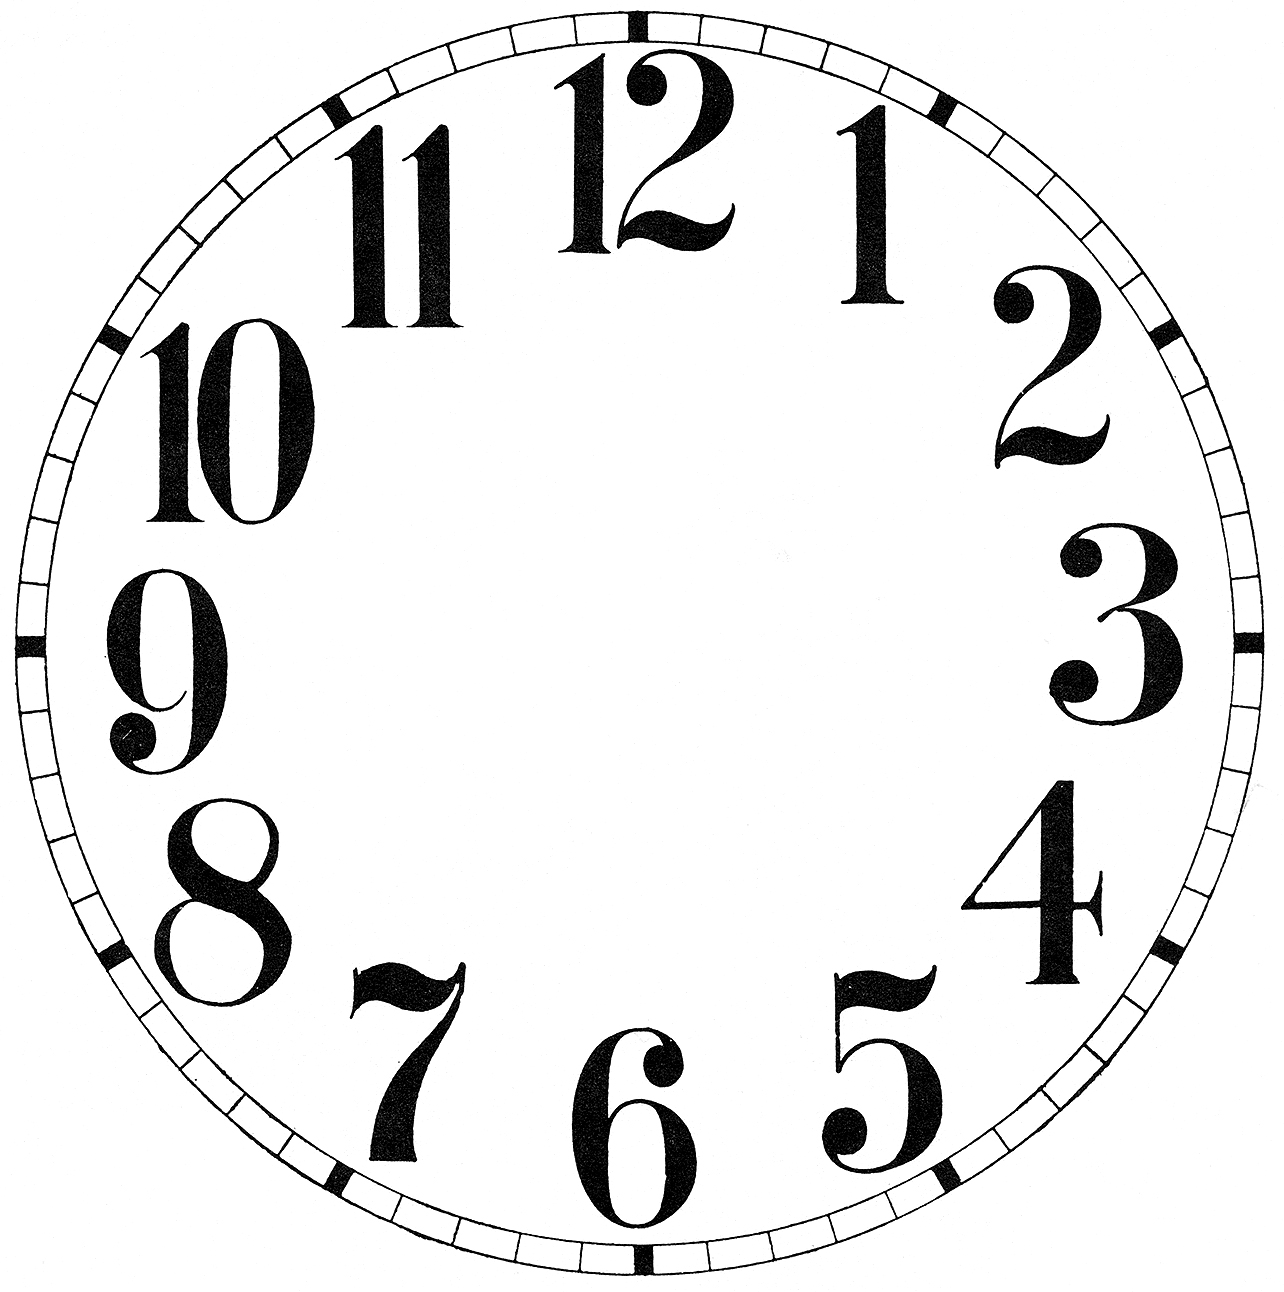 Crazy image intended for printable clock template